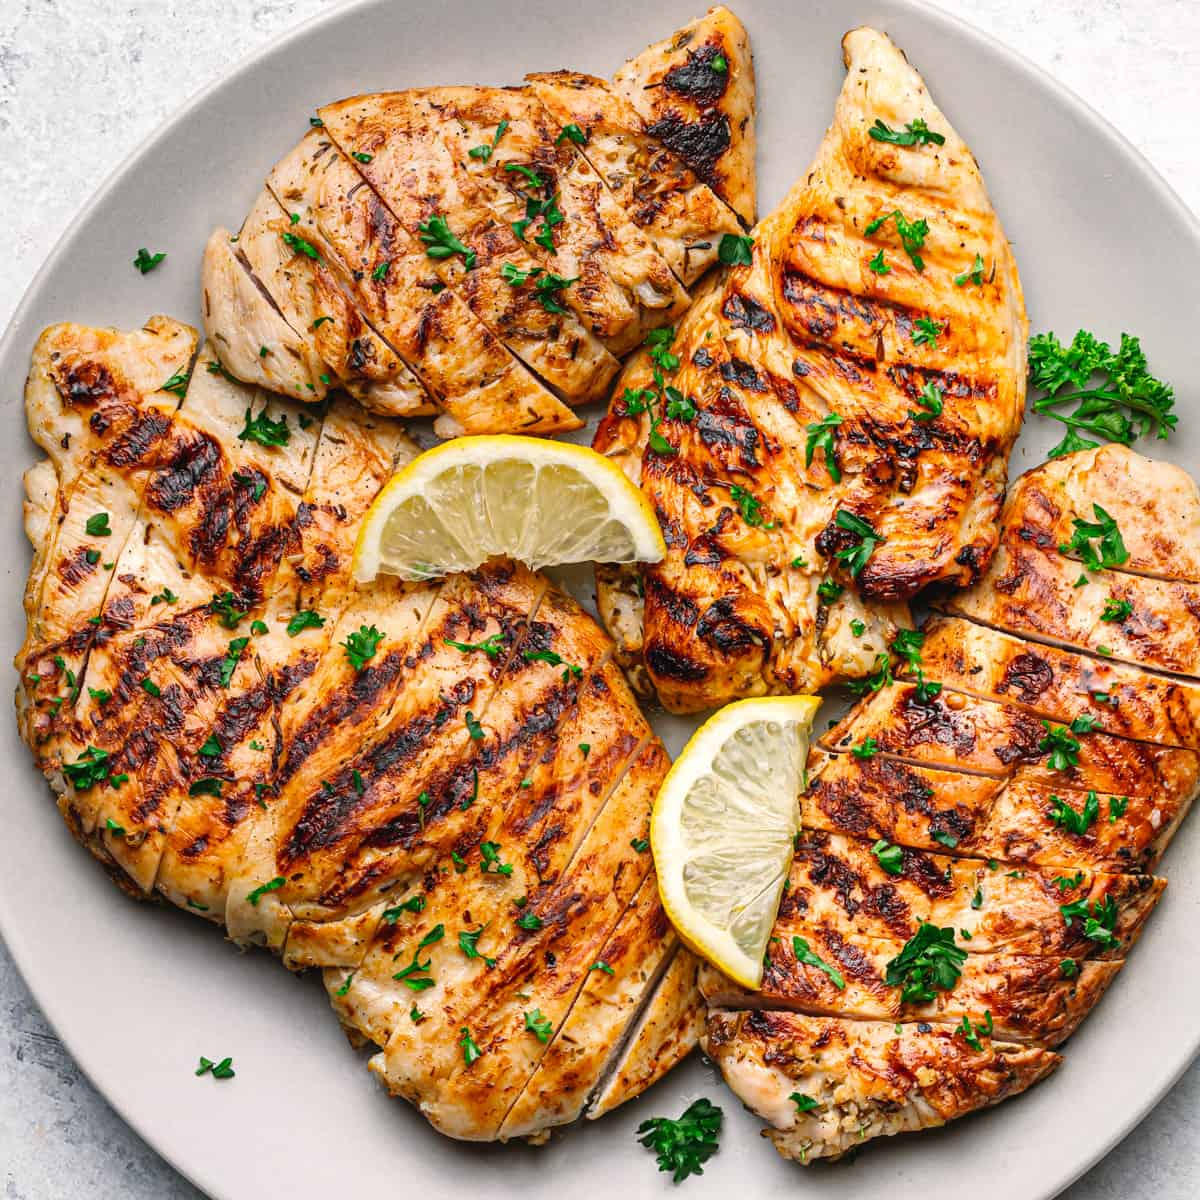 Learn how to grill chicken breast